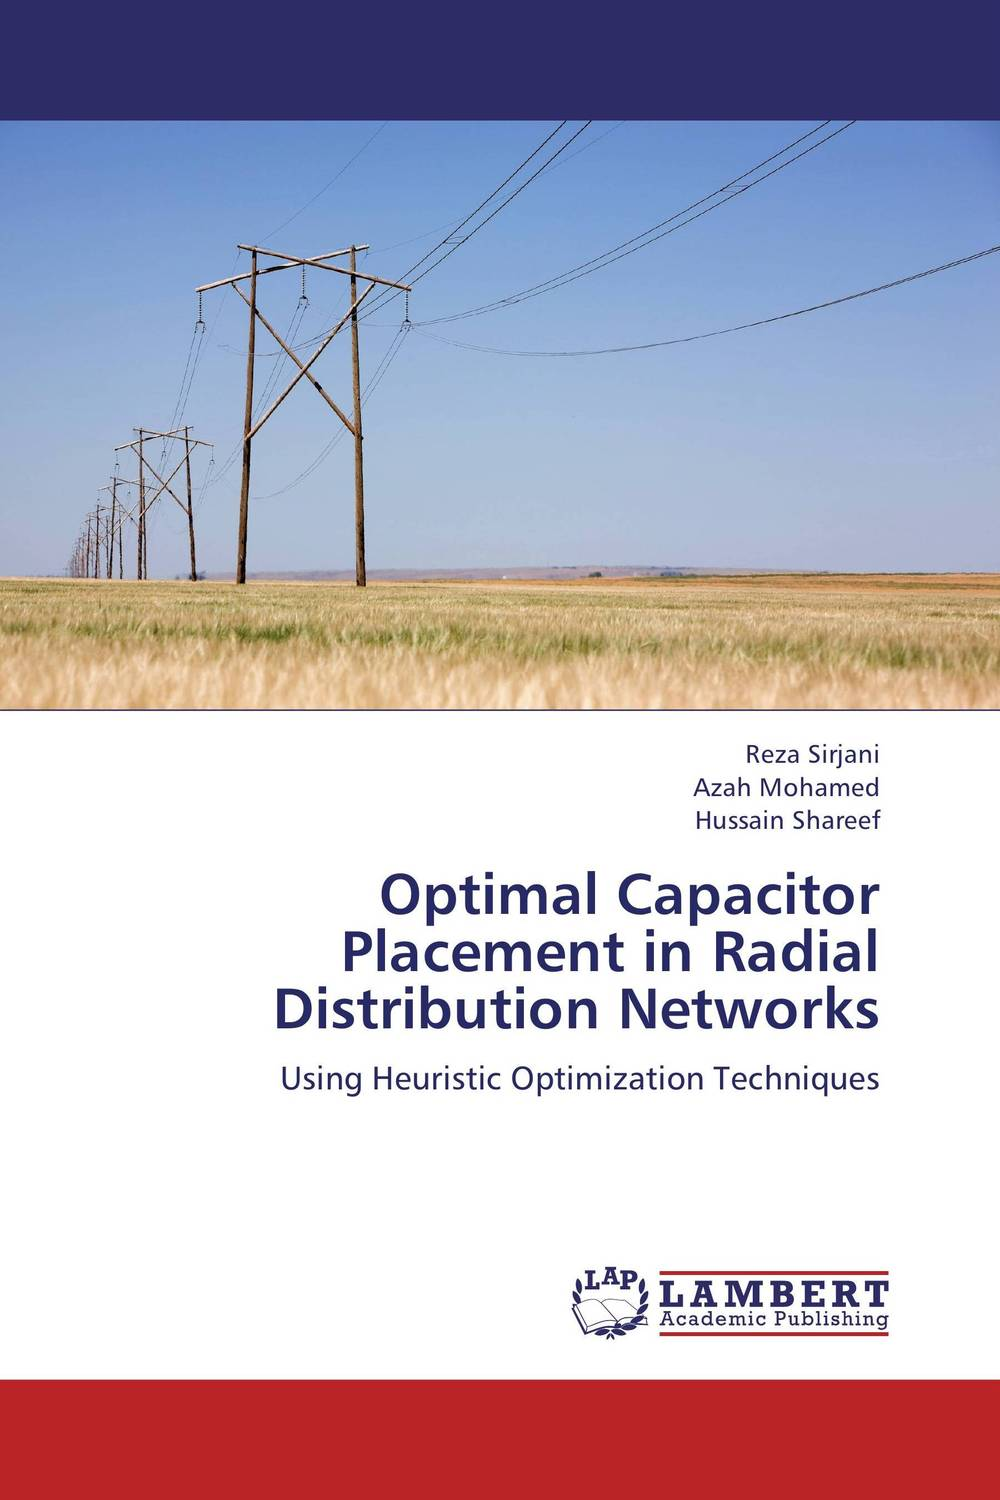 Optimal Capacitor Placement in Radial Distribution Networks